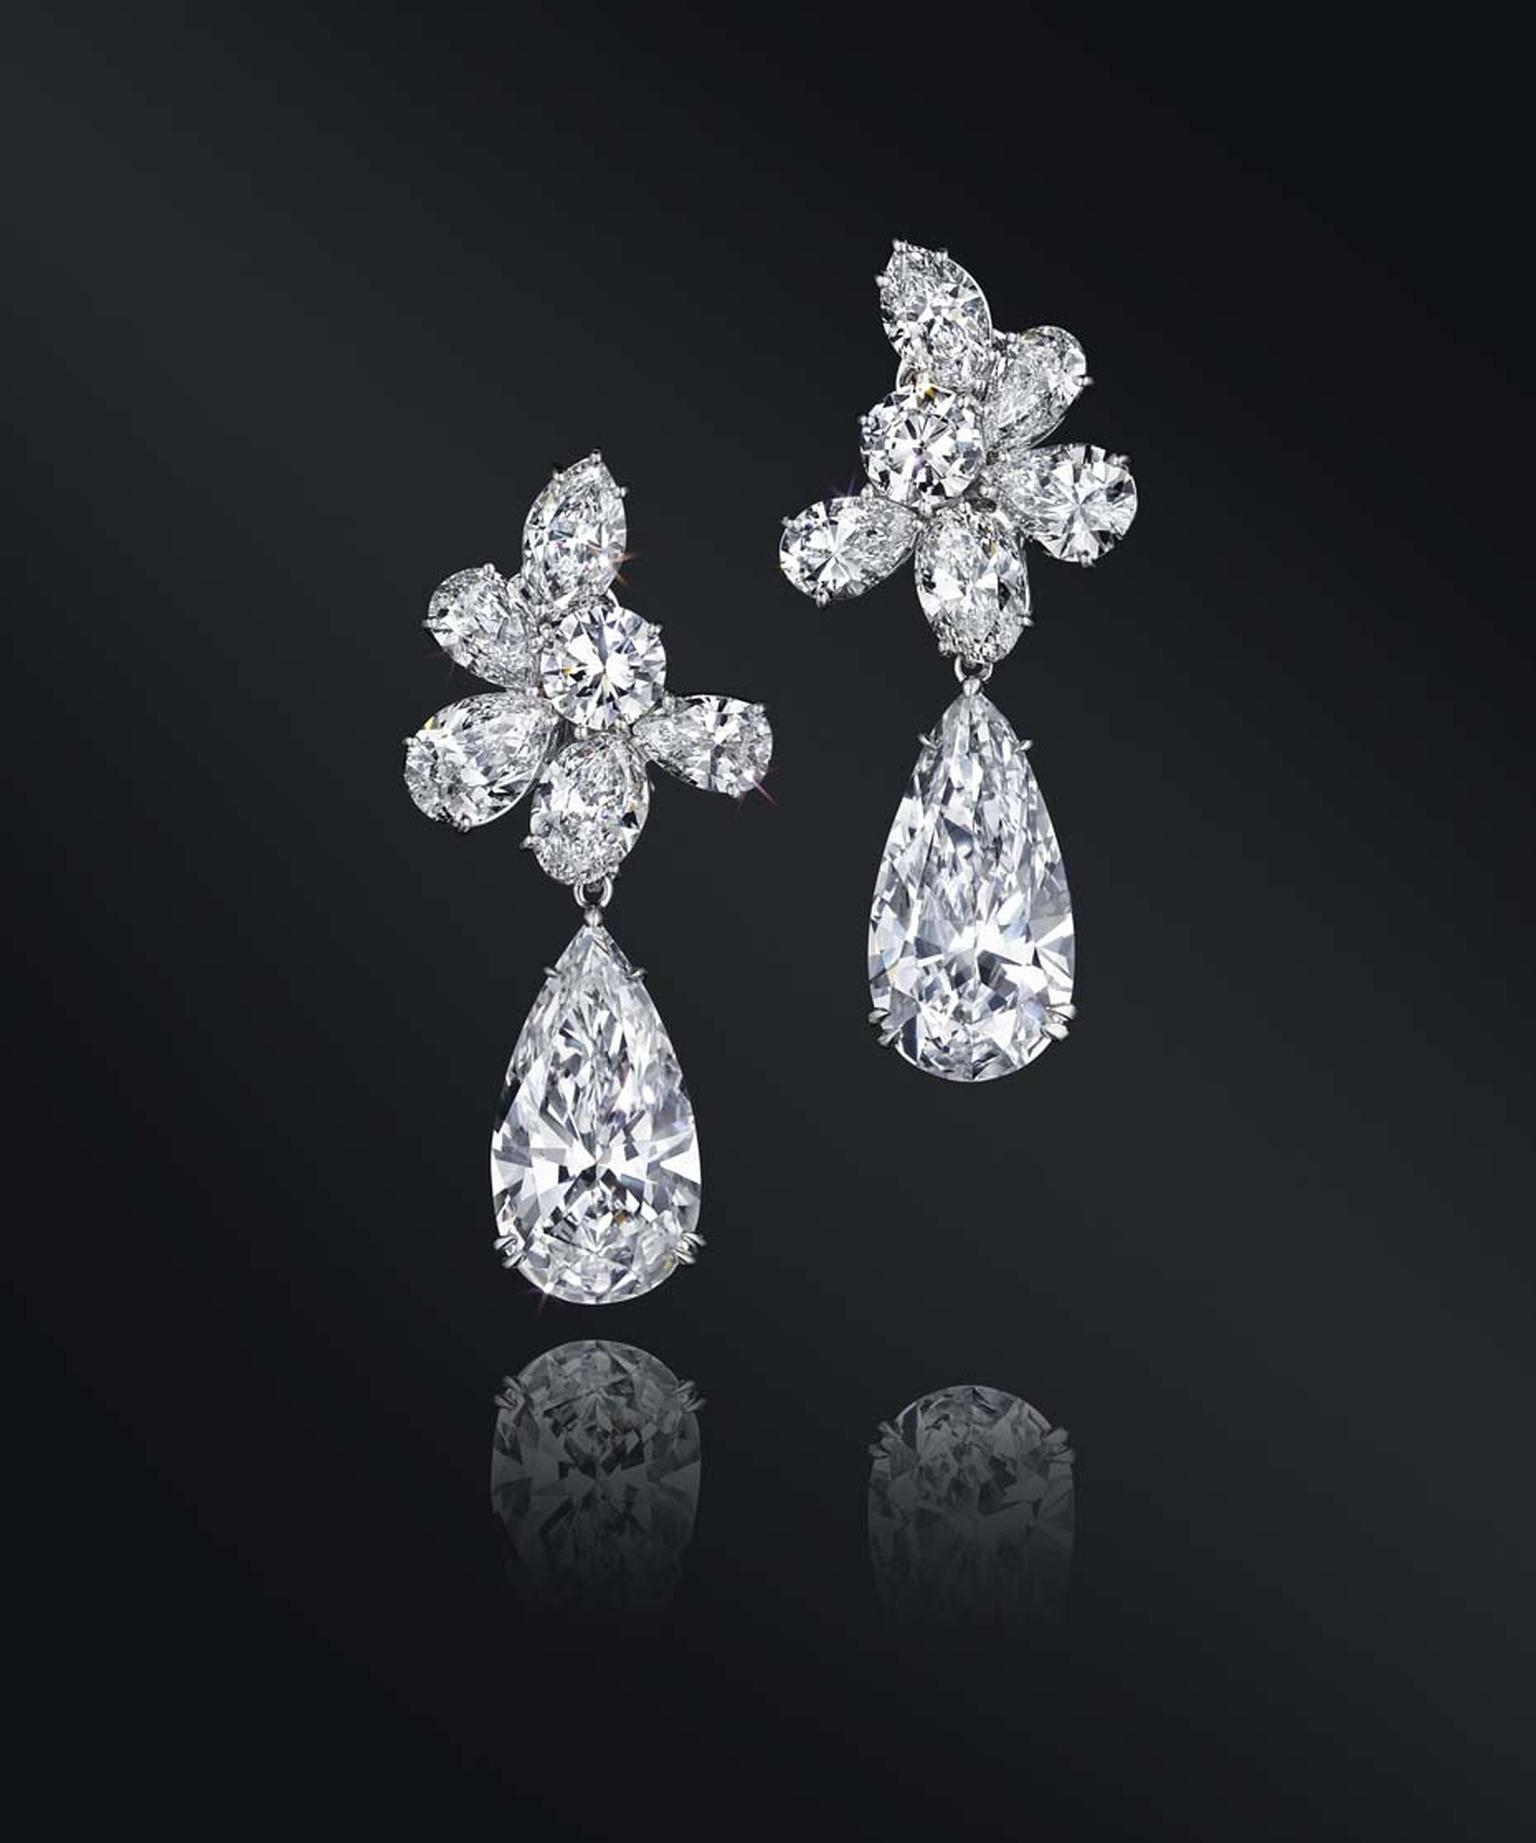 This beautiful pair of D-color Harry Winston diamond ear pendants is expected to achieve between $1.5-2 million at Christie's Magnificent Jewels auction in New York on April 14.